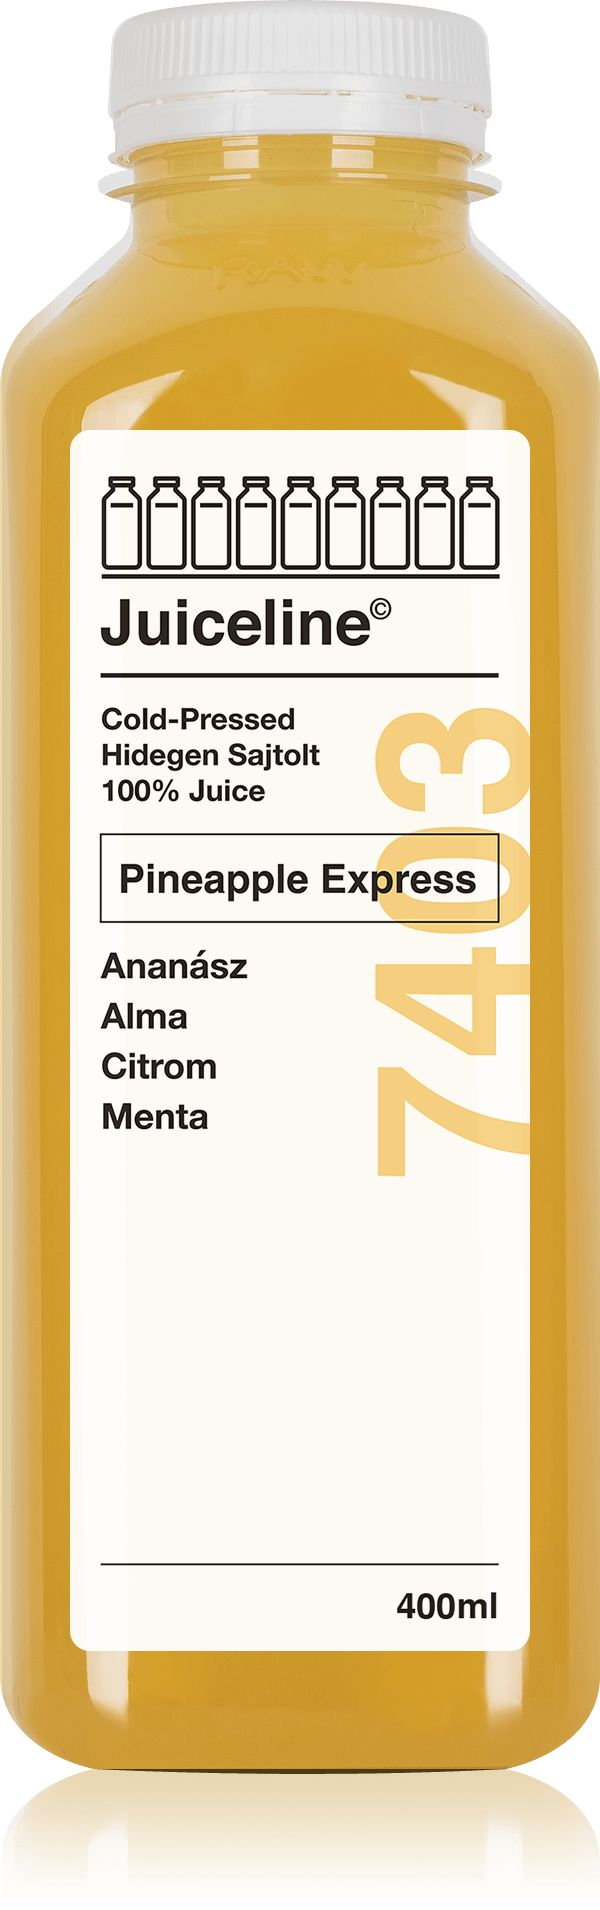 7403 Pineapple Express